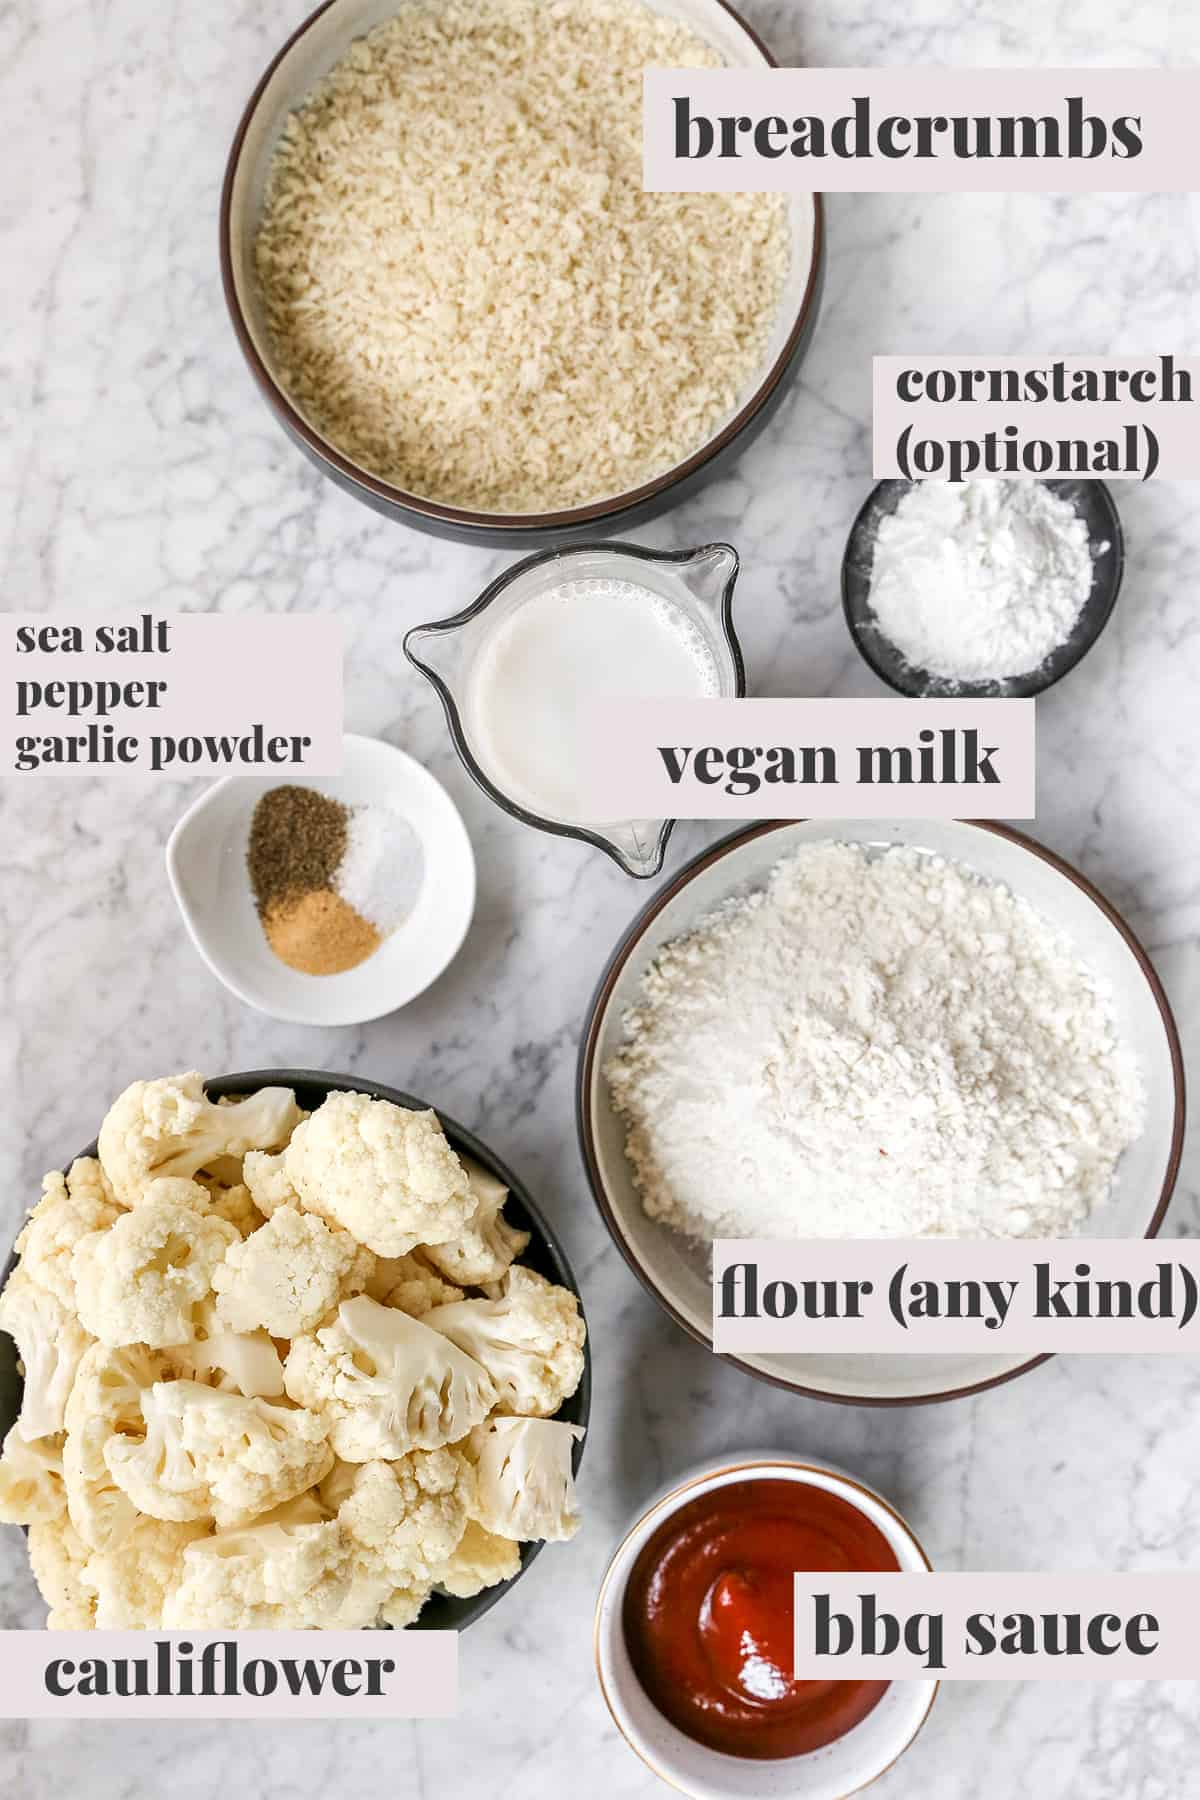 Ingredients for cauliflower wings.